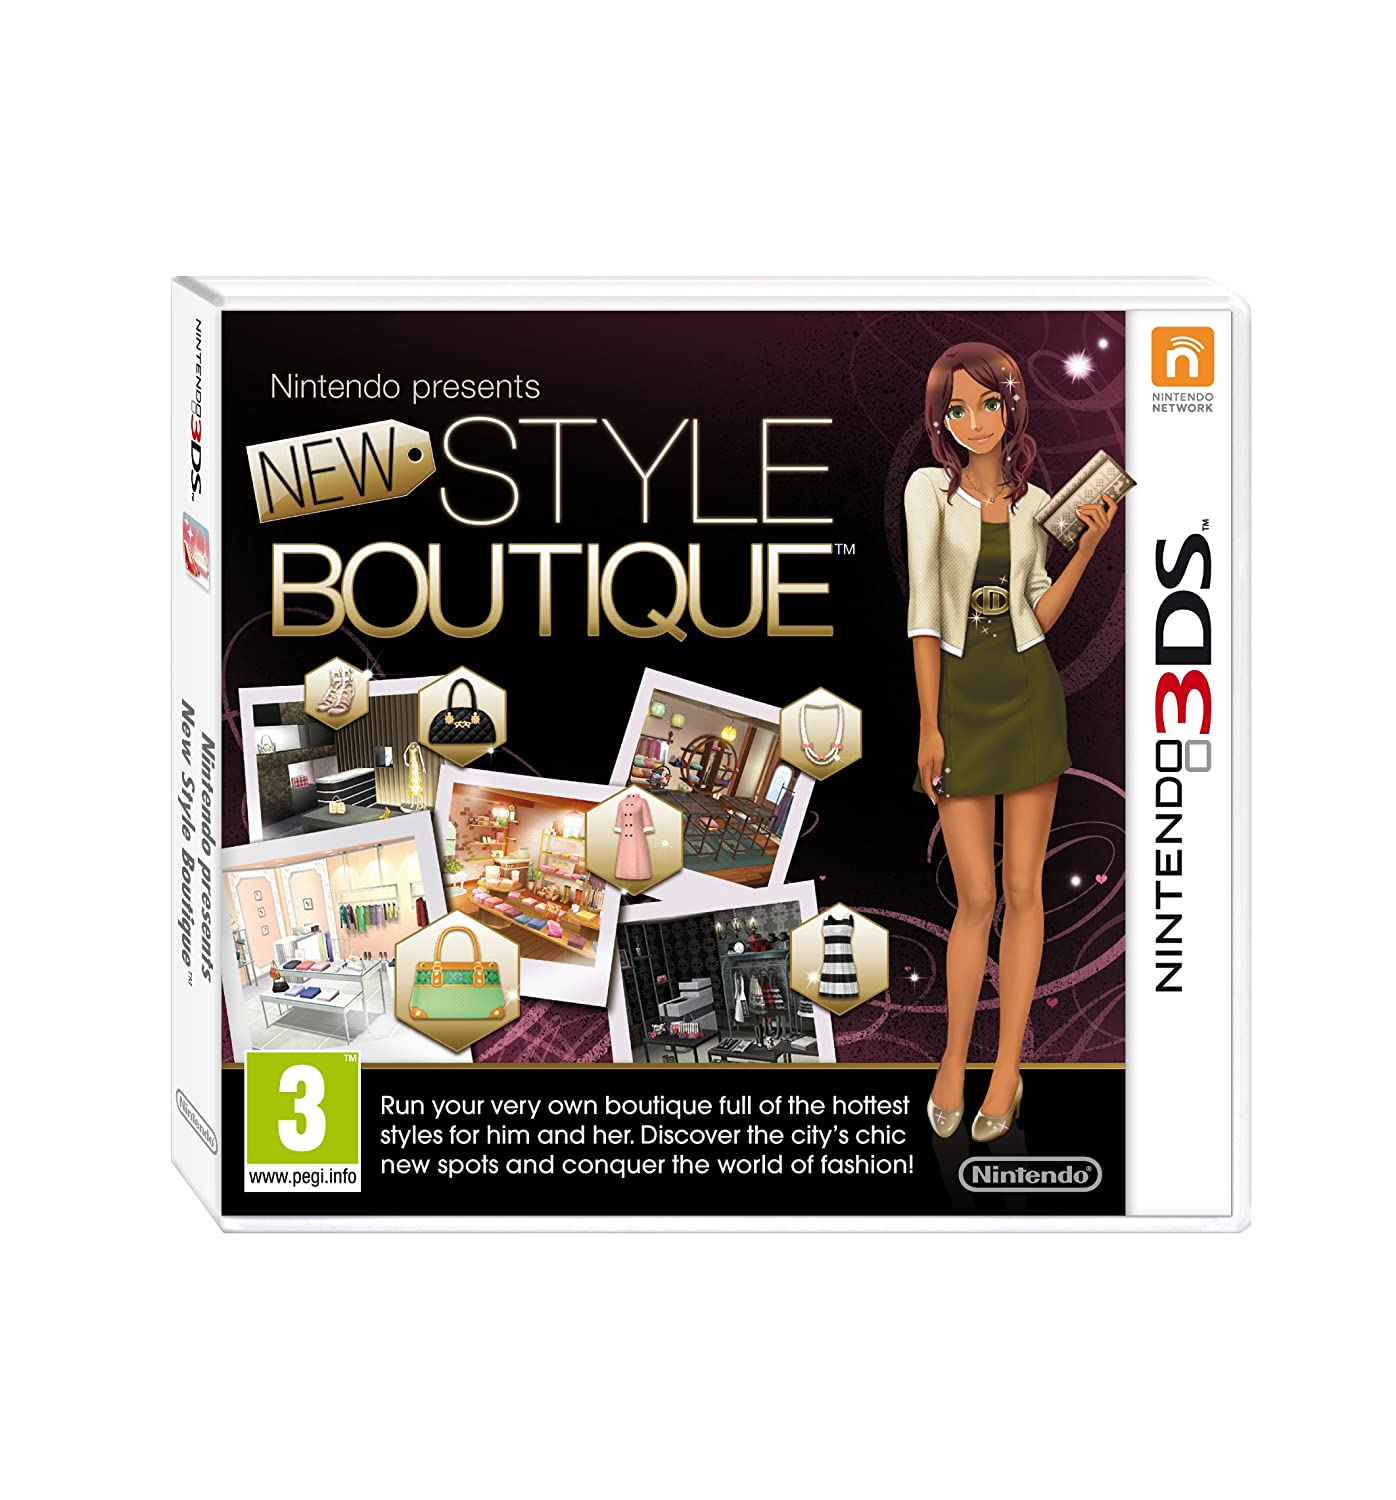 New Style Finally popular brand Boutique Nintendo At the price of surprise 3DS